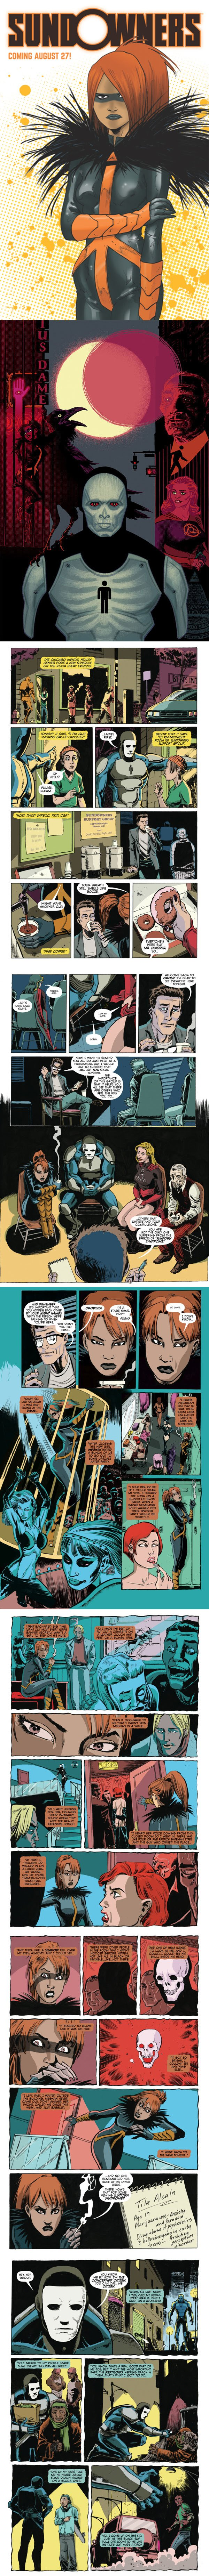 Sundowners Issue 1 Preview